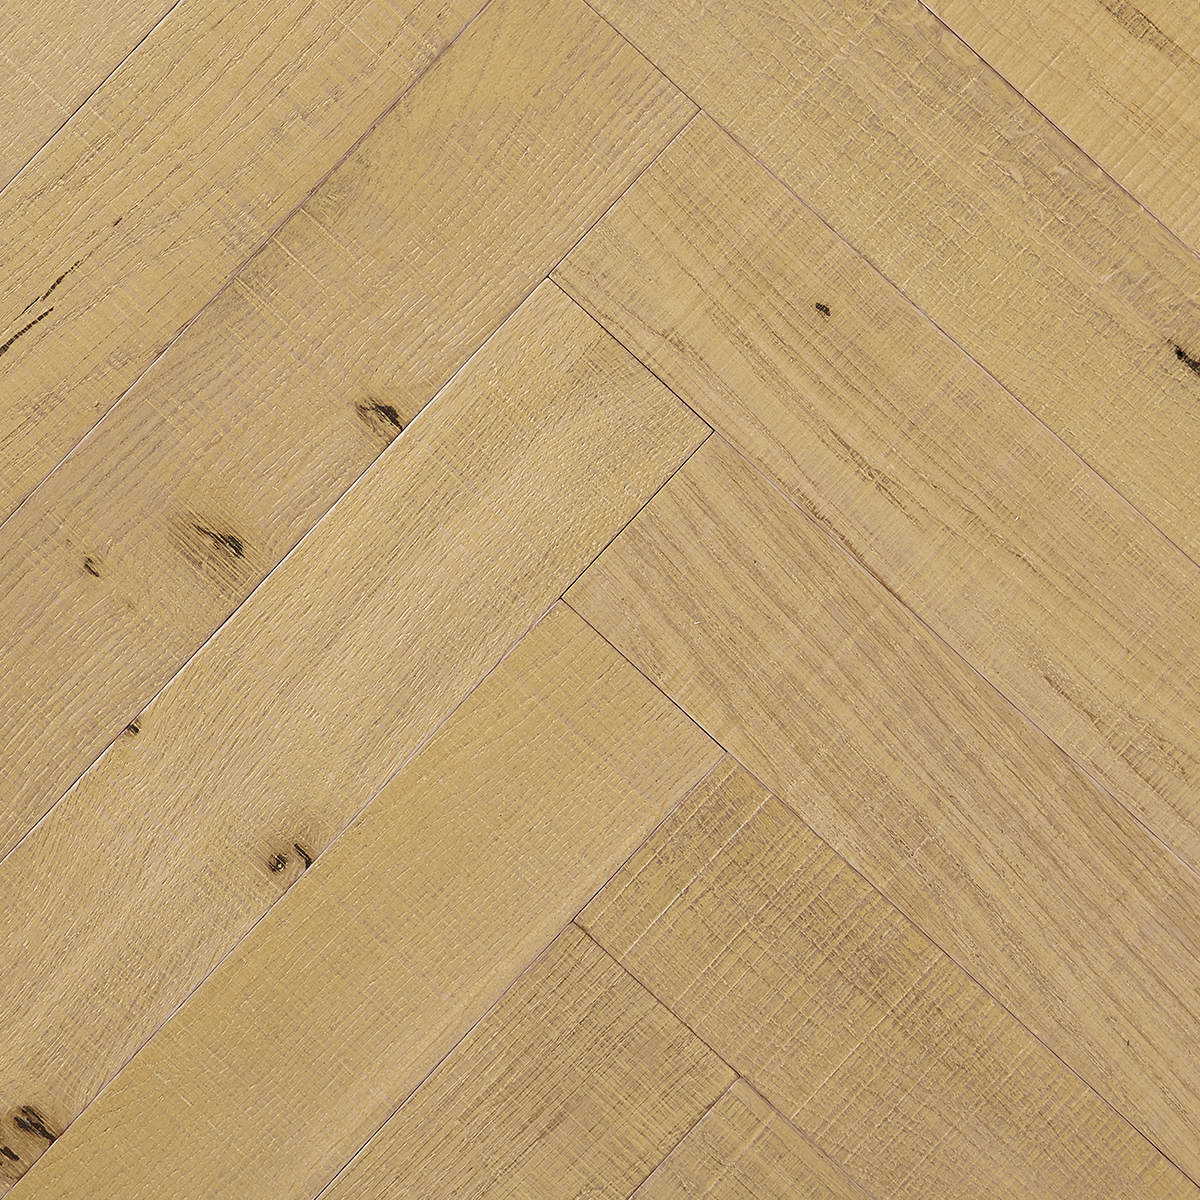 Camden herringbone woodworks by ted todd engineered wood for Engineered wood flooring manufacturers